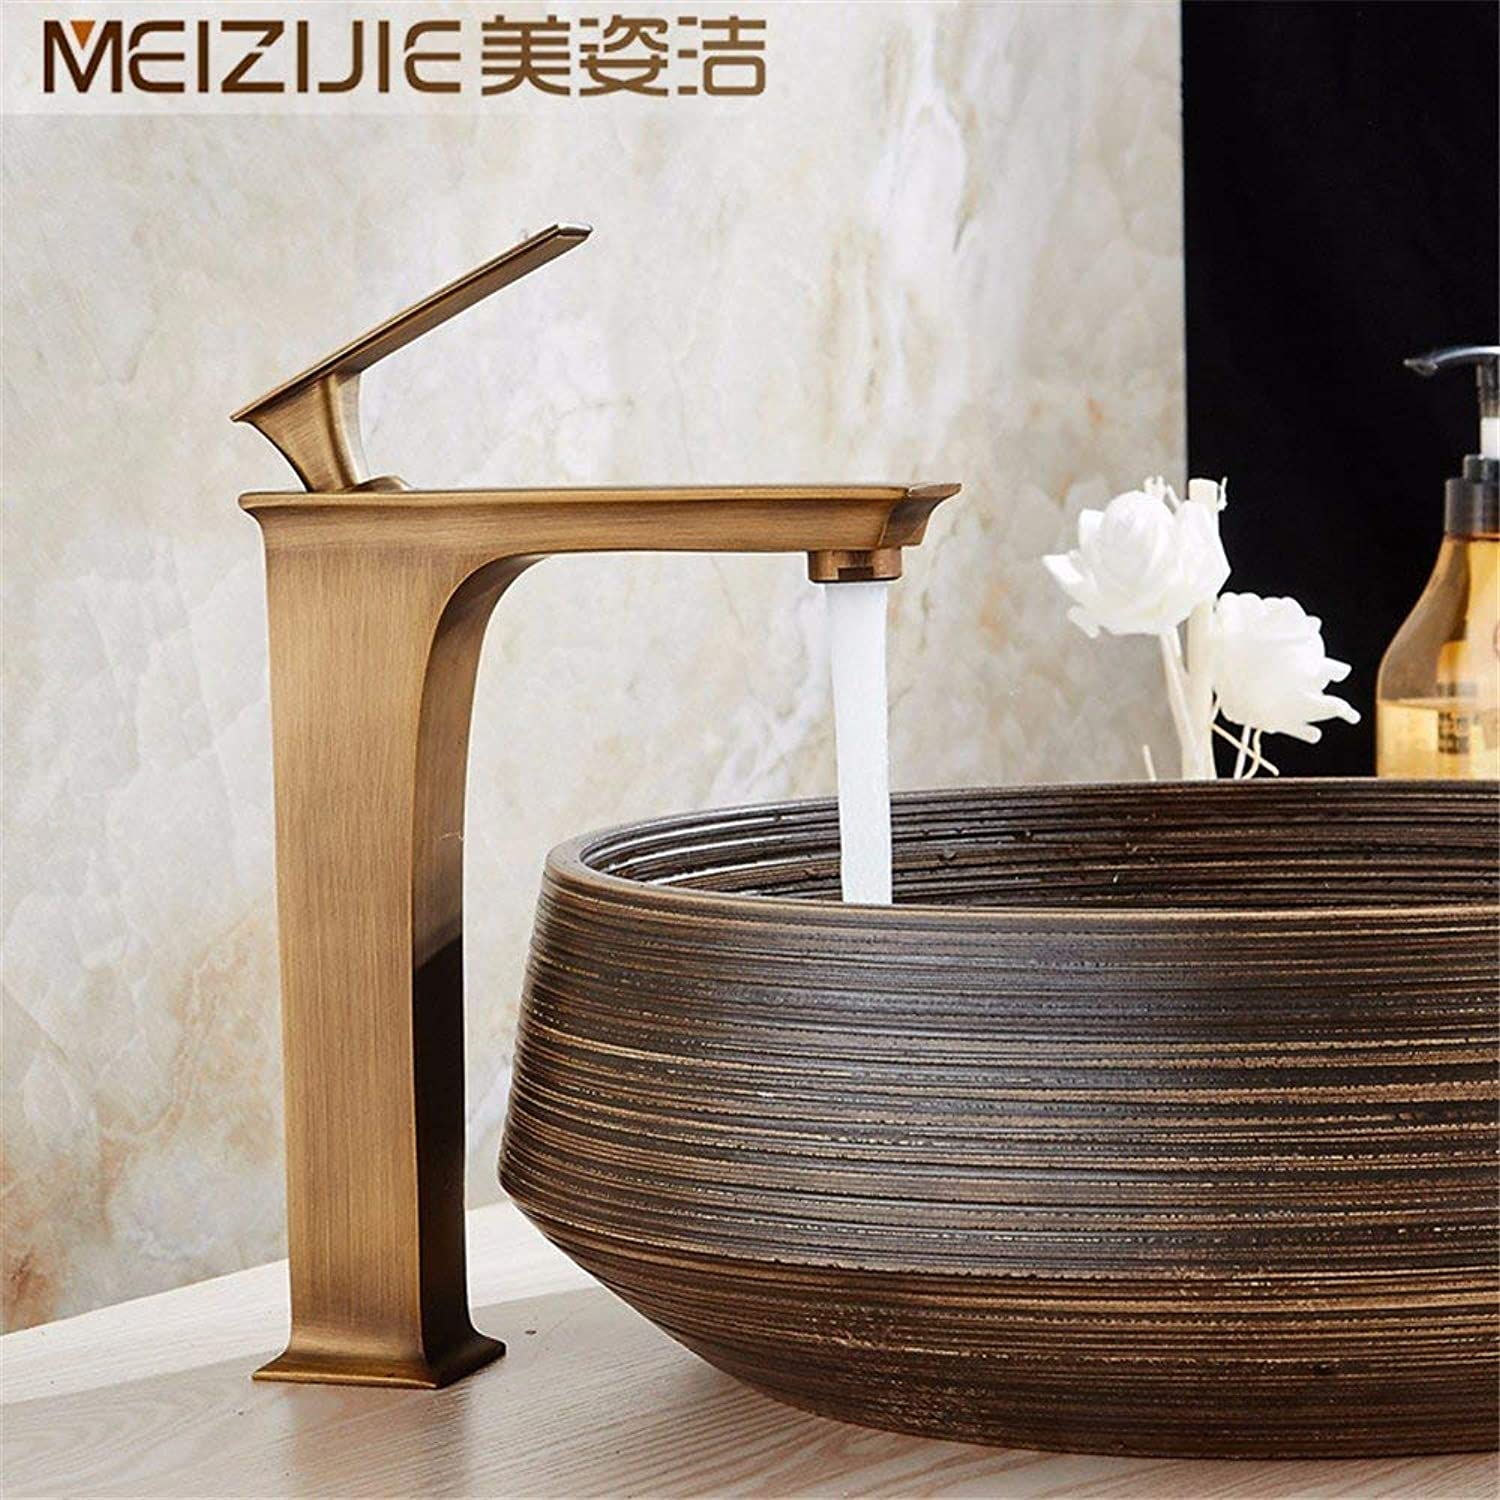 Creative copper hot and cold faucet basin faucet square retro (color   -, Size   -)